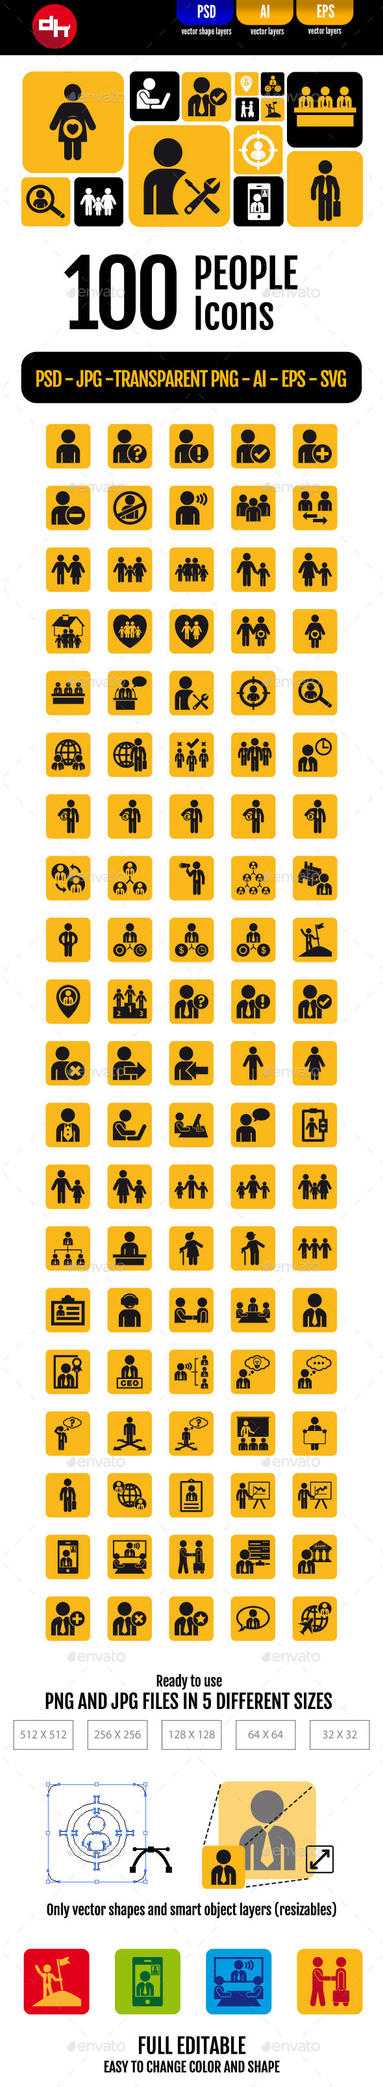 100 People Icons Pack by doghead